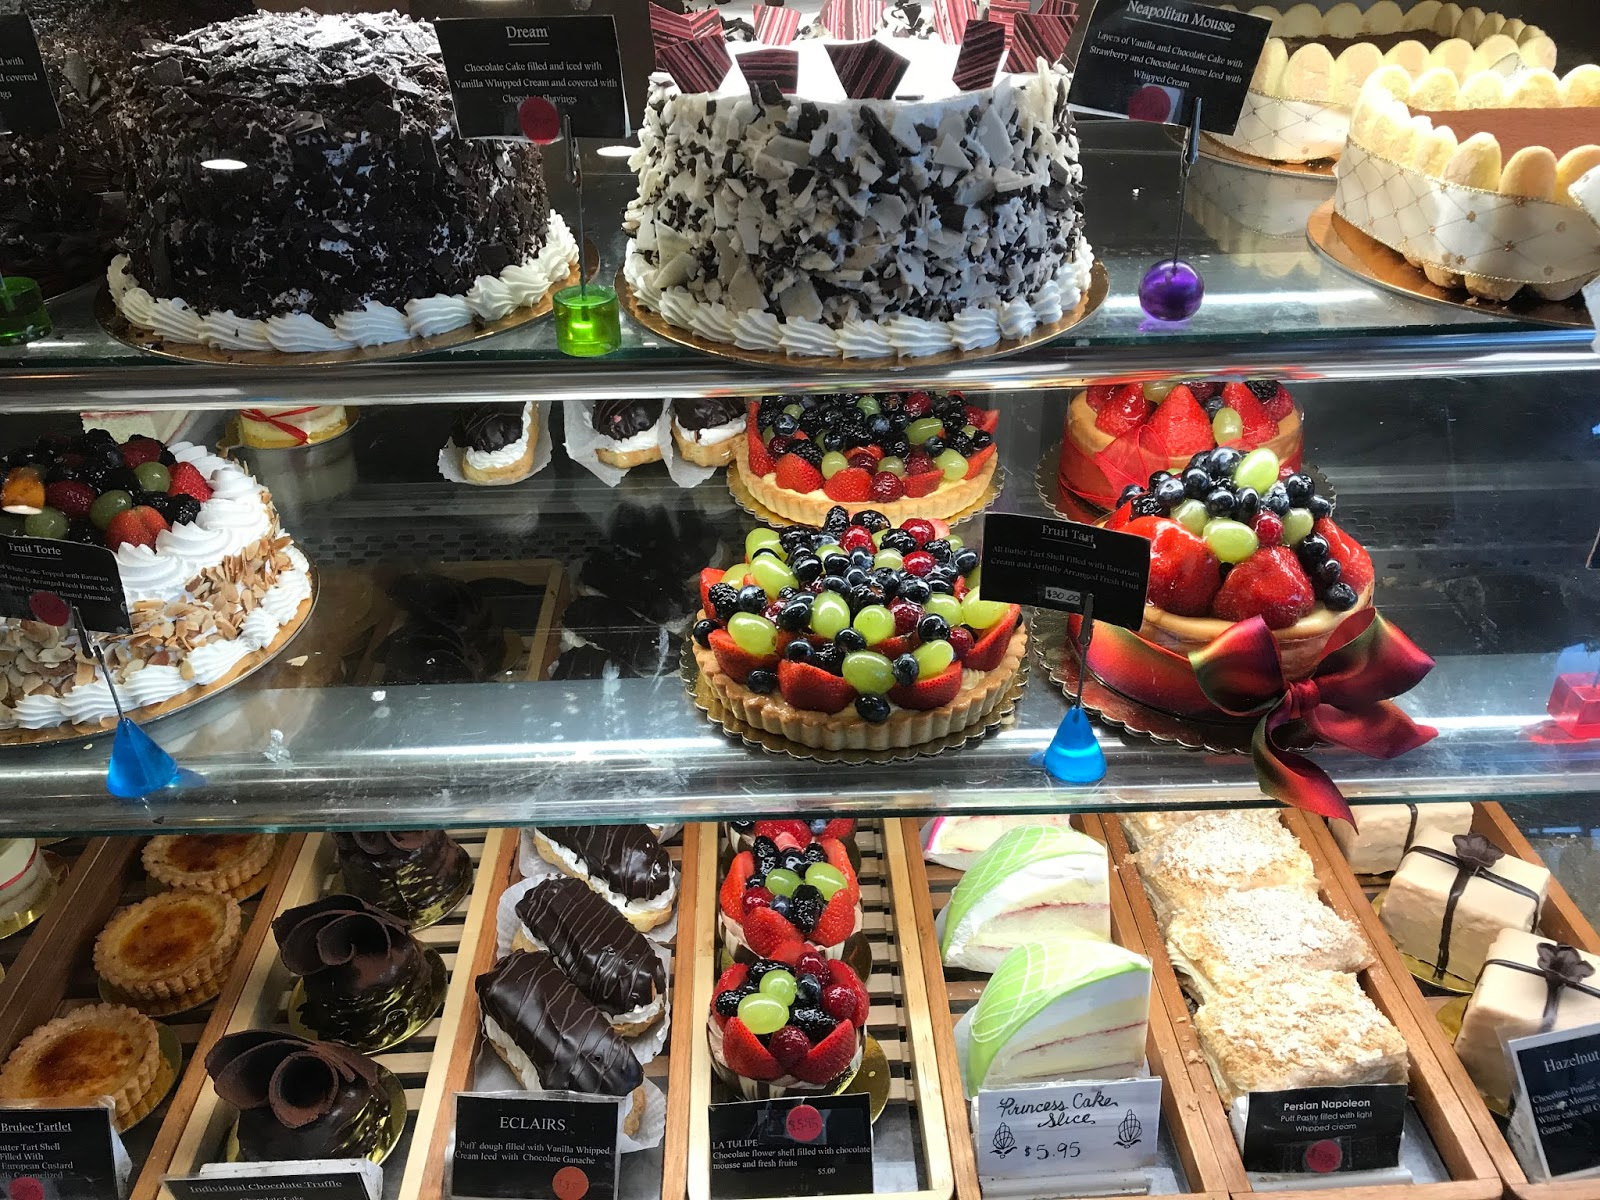 The Pastry Chef's Baking: Bakery Review: La Patisserie